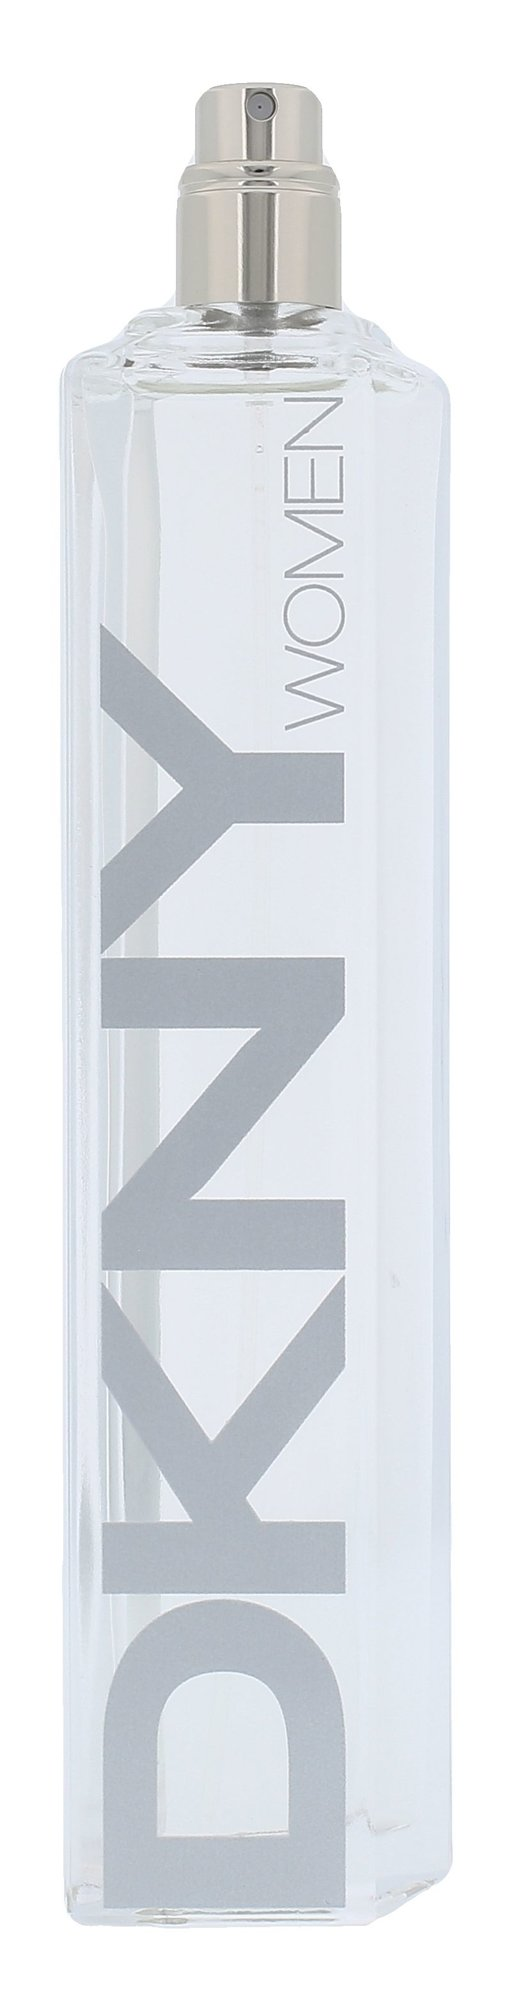 DKNY DKNY Energizing 2011 EDT 50ml